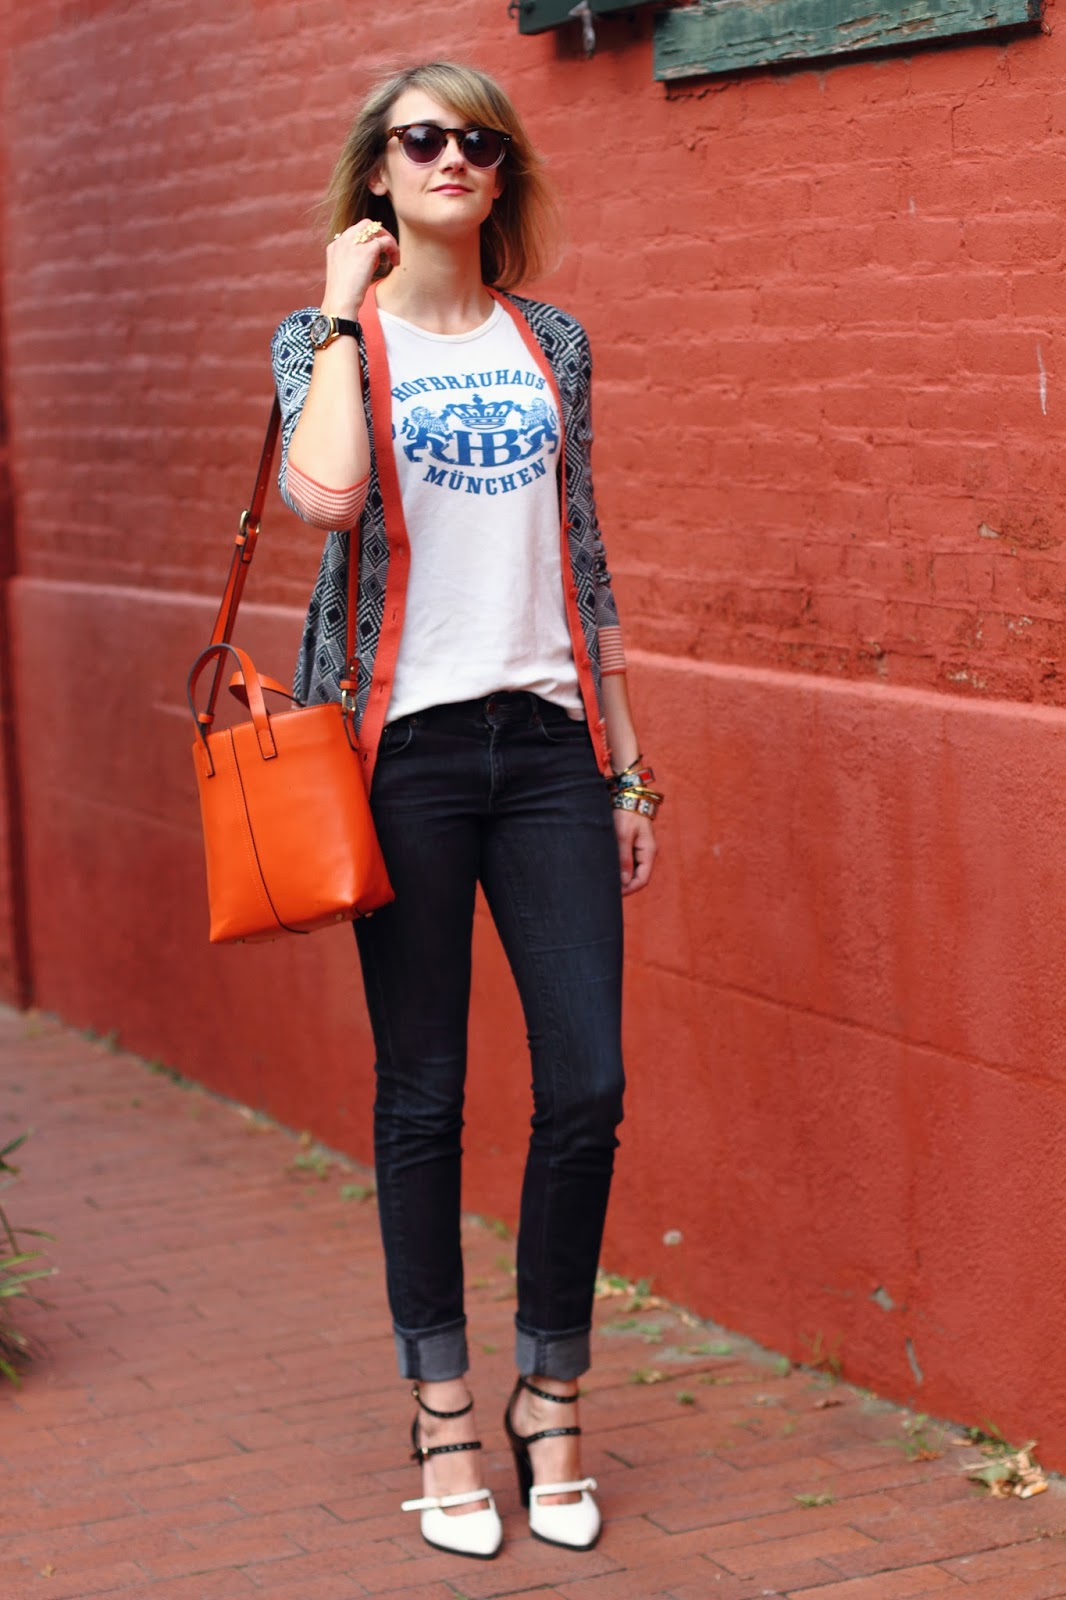 vintage Hofbrauhaus t-shirt, Tory Burch cardigan, and skinny jeans